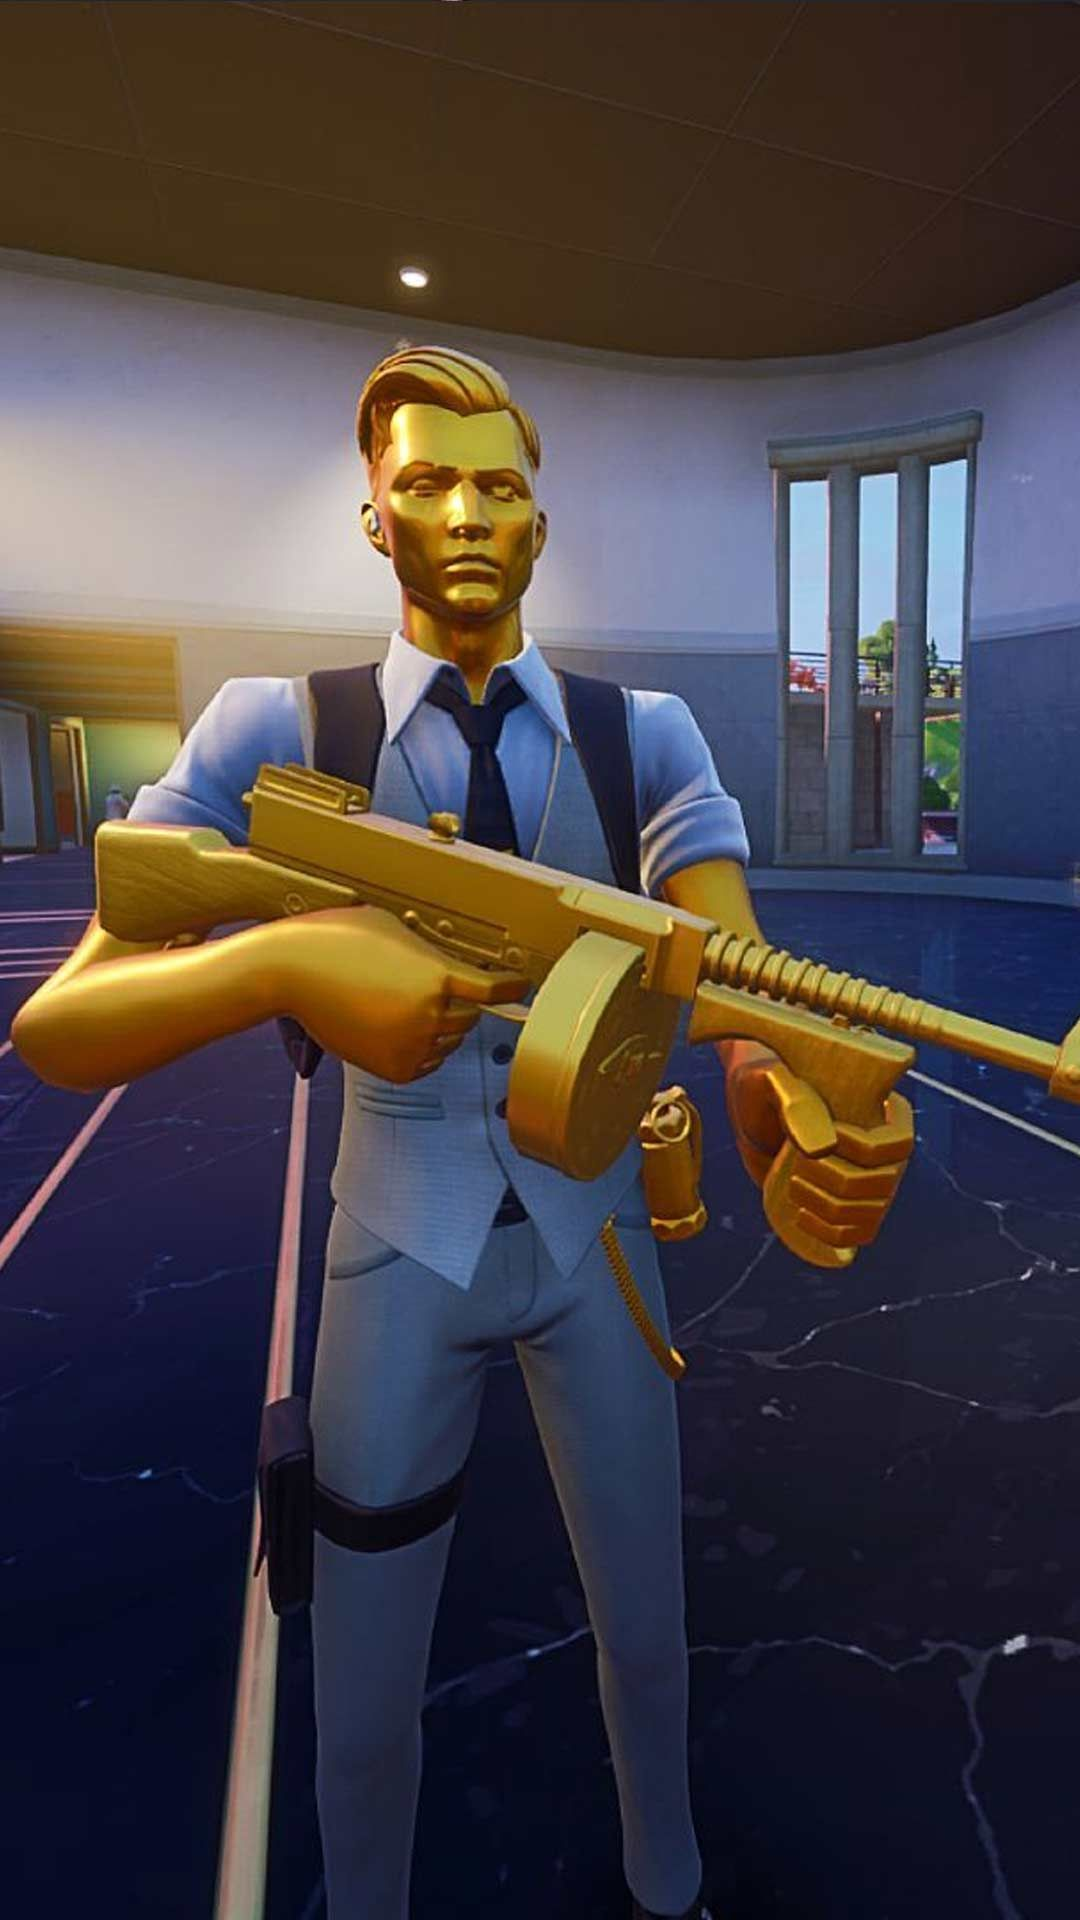 Midas Fortnite Skin Phone Wallpaper Download Hd Backgrounds For Iphone Android Lock Screen In 2020 Skin Images Android Phone Wallpaper Best Wallpapers Android